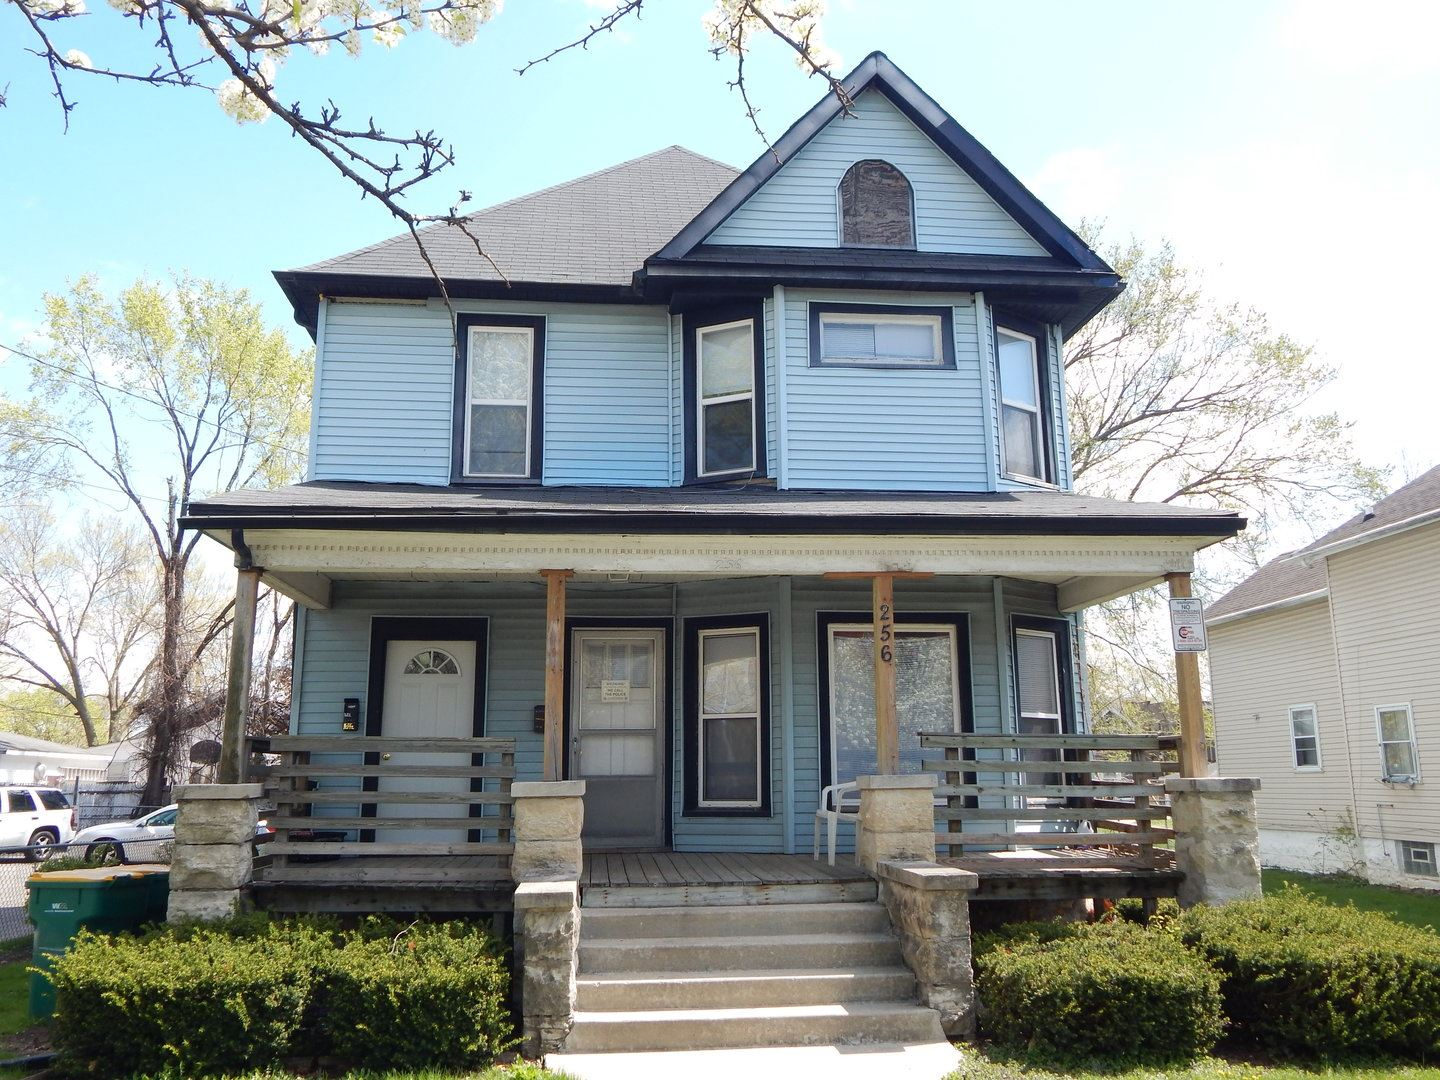 Photo of 256 N Center Street, Joliet, IL 60435 (MLS # 11057997)